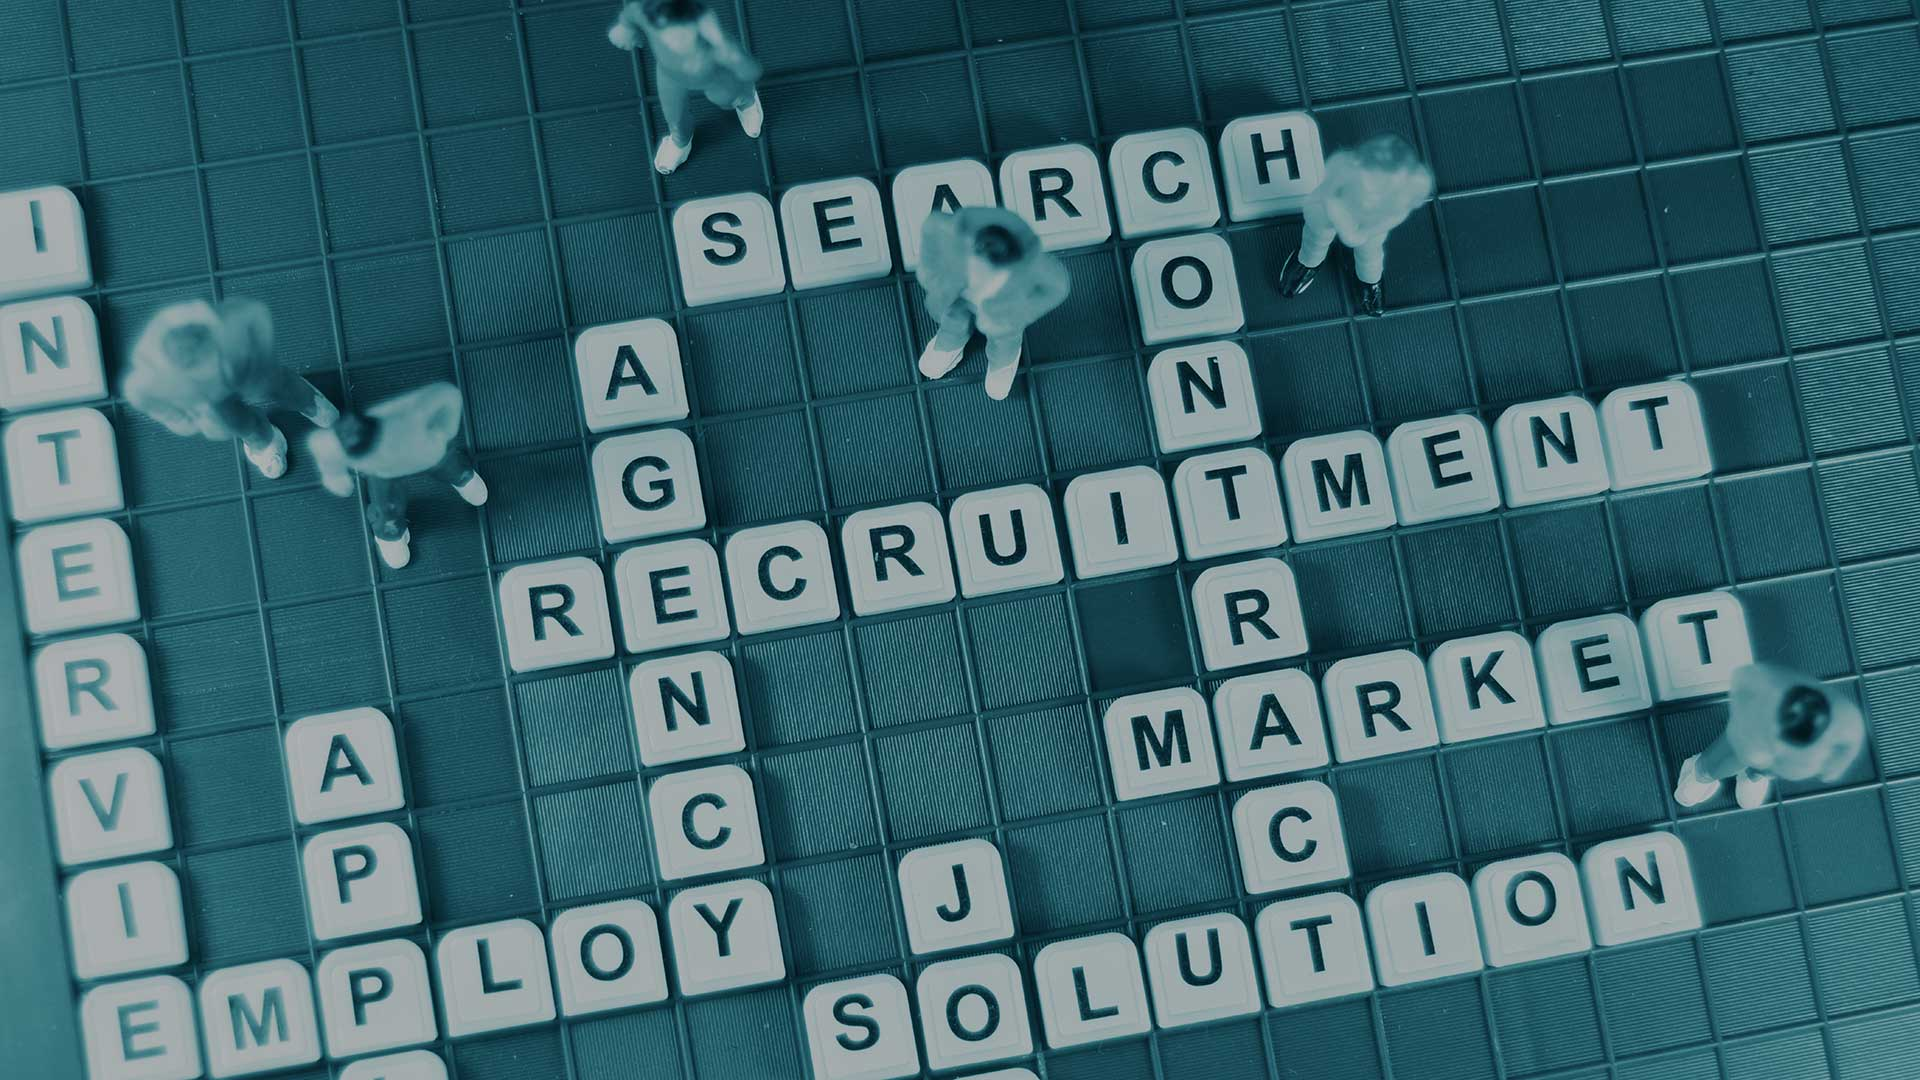 All-in-one Job search